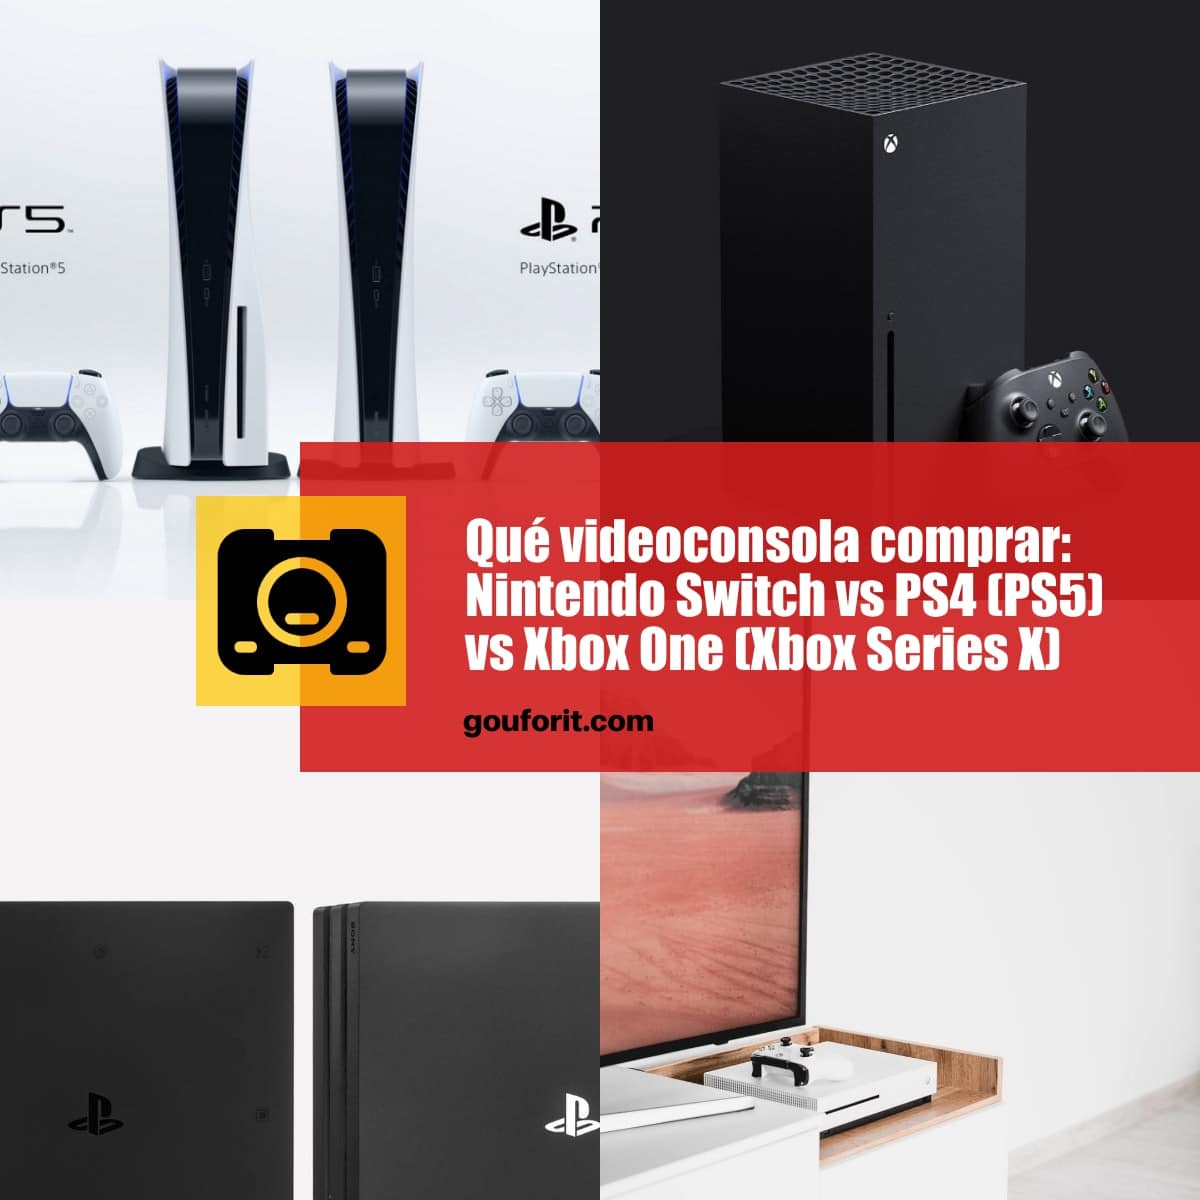 Qué videoconsola comprar: Nintendo Switch vs PS4 (PS5) vs Xbox One (Xbox Series X)